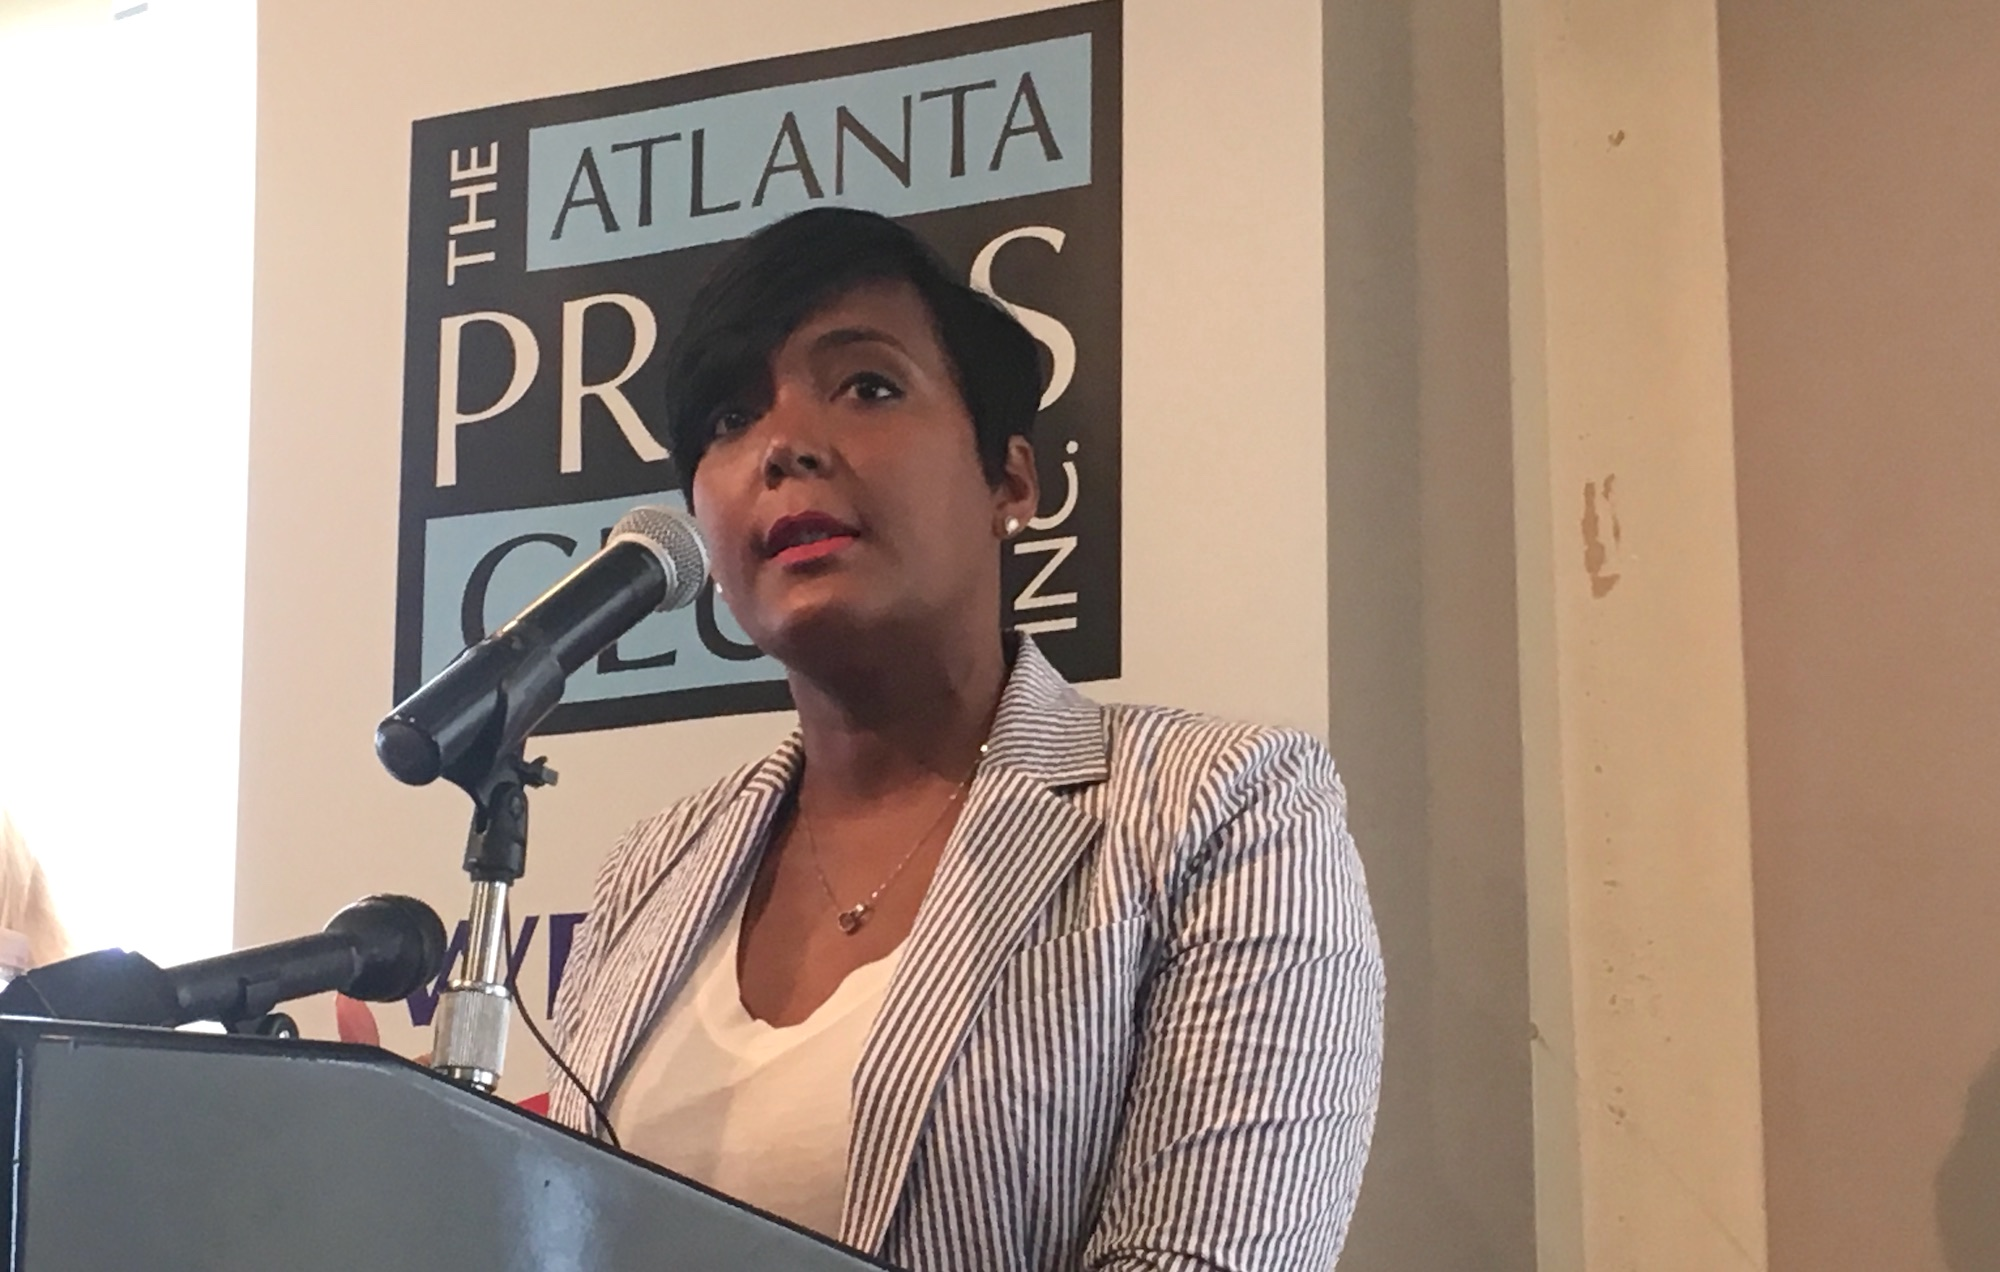 Atlanta Mayor Keisha Lance Bottoms. File/Credit: Maria Saporta